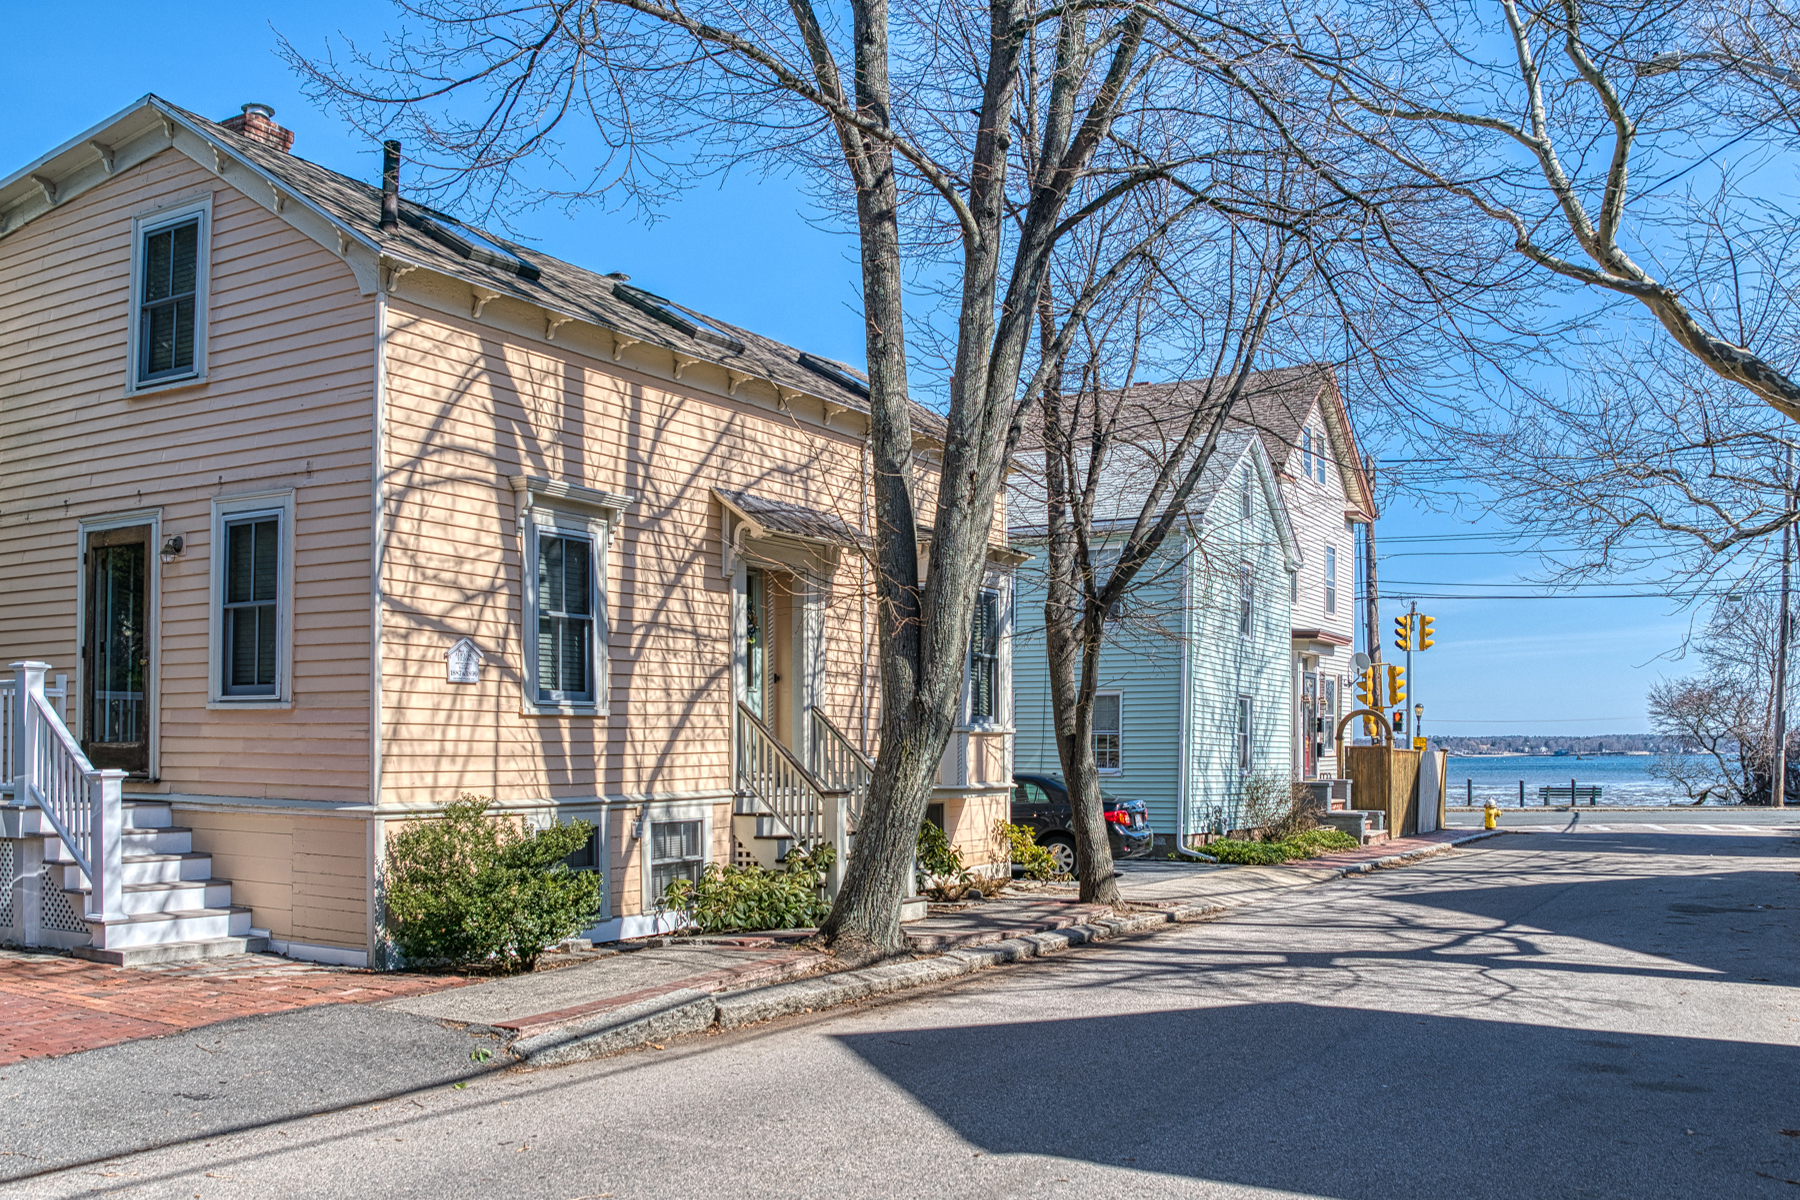 Single Family Home for Active at Charming antique located in a most coveted area of Salem 23 Pickman Street Salem, Massachusetts 01970 United States